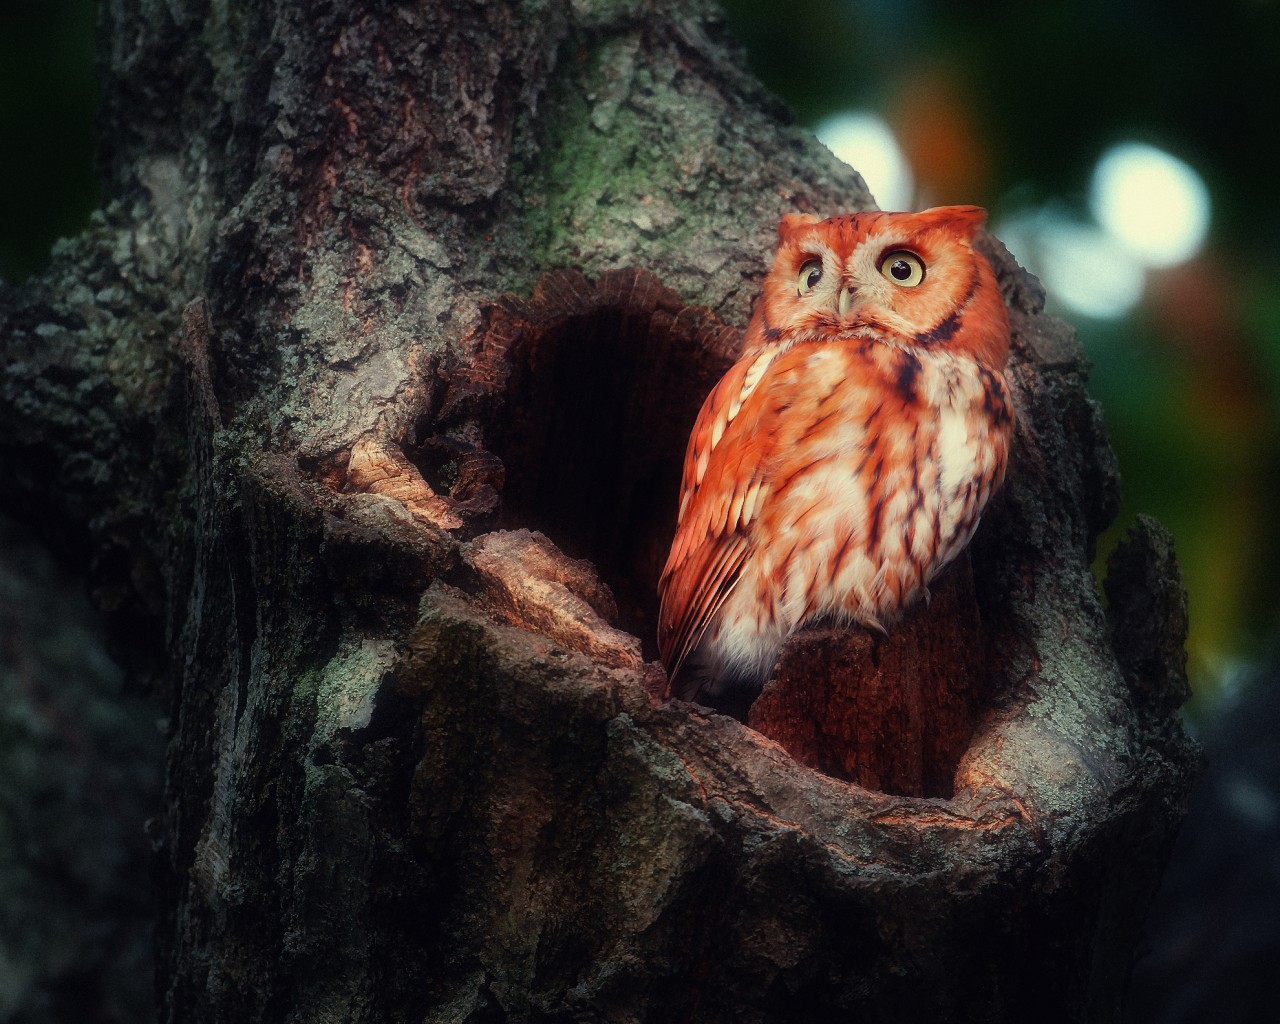 35042 download wallpaper Animals, Birds, Owl screensavers and pictures for free